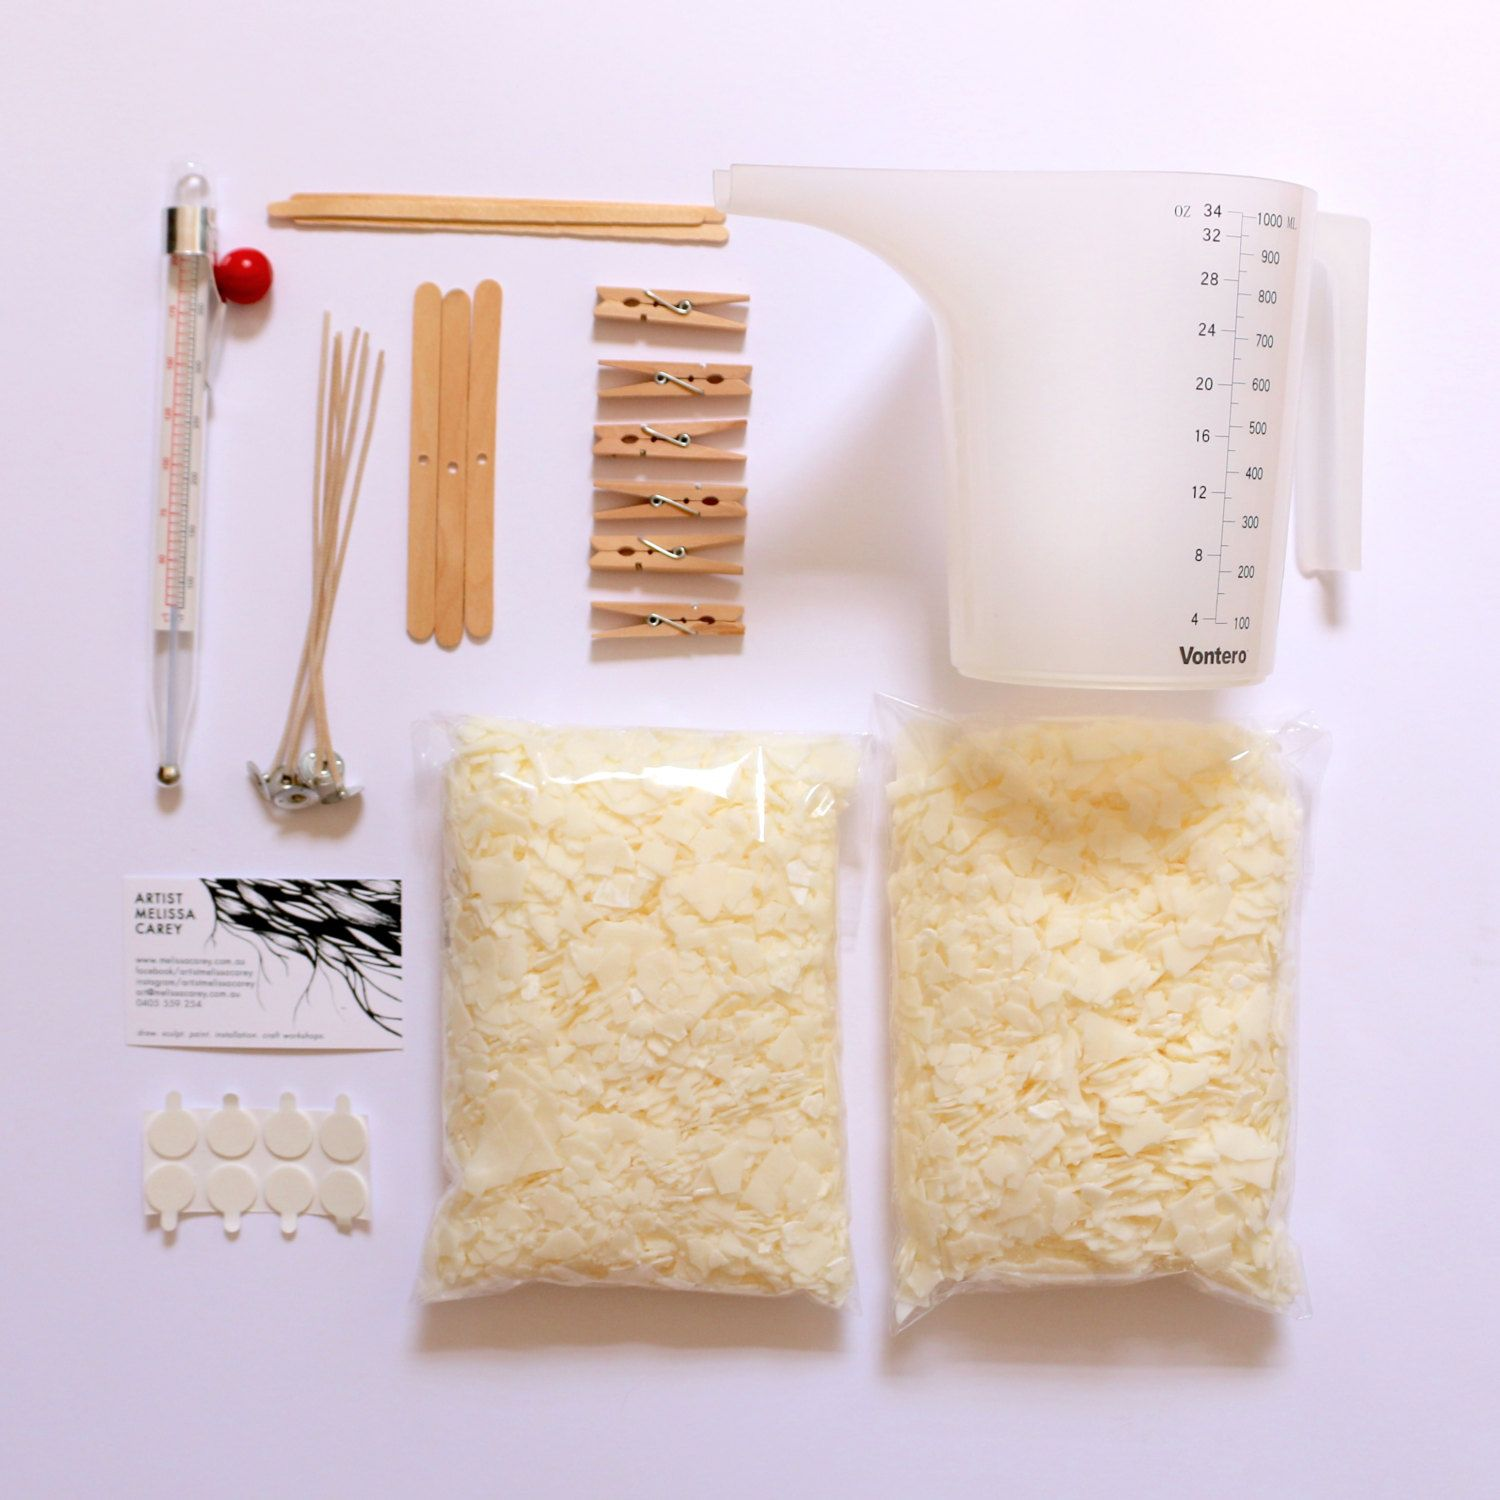 Candle Making DIY Kit with EcoSoy Wax, all supplies and